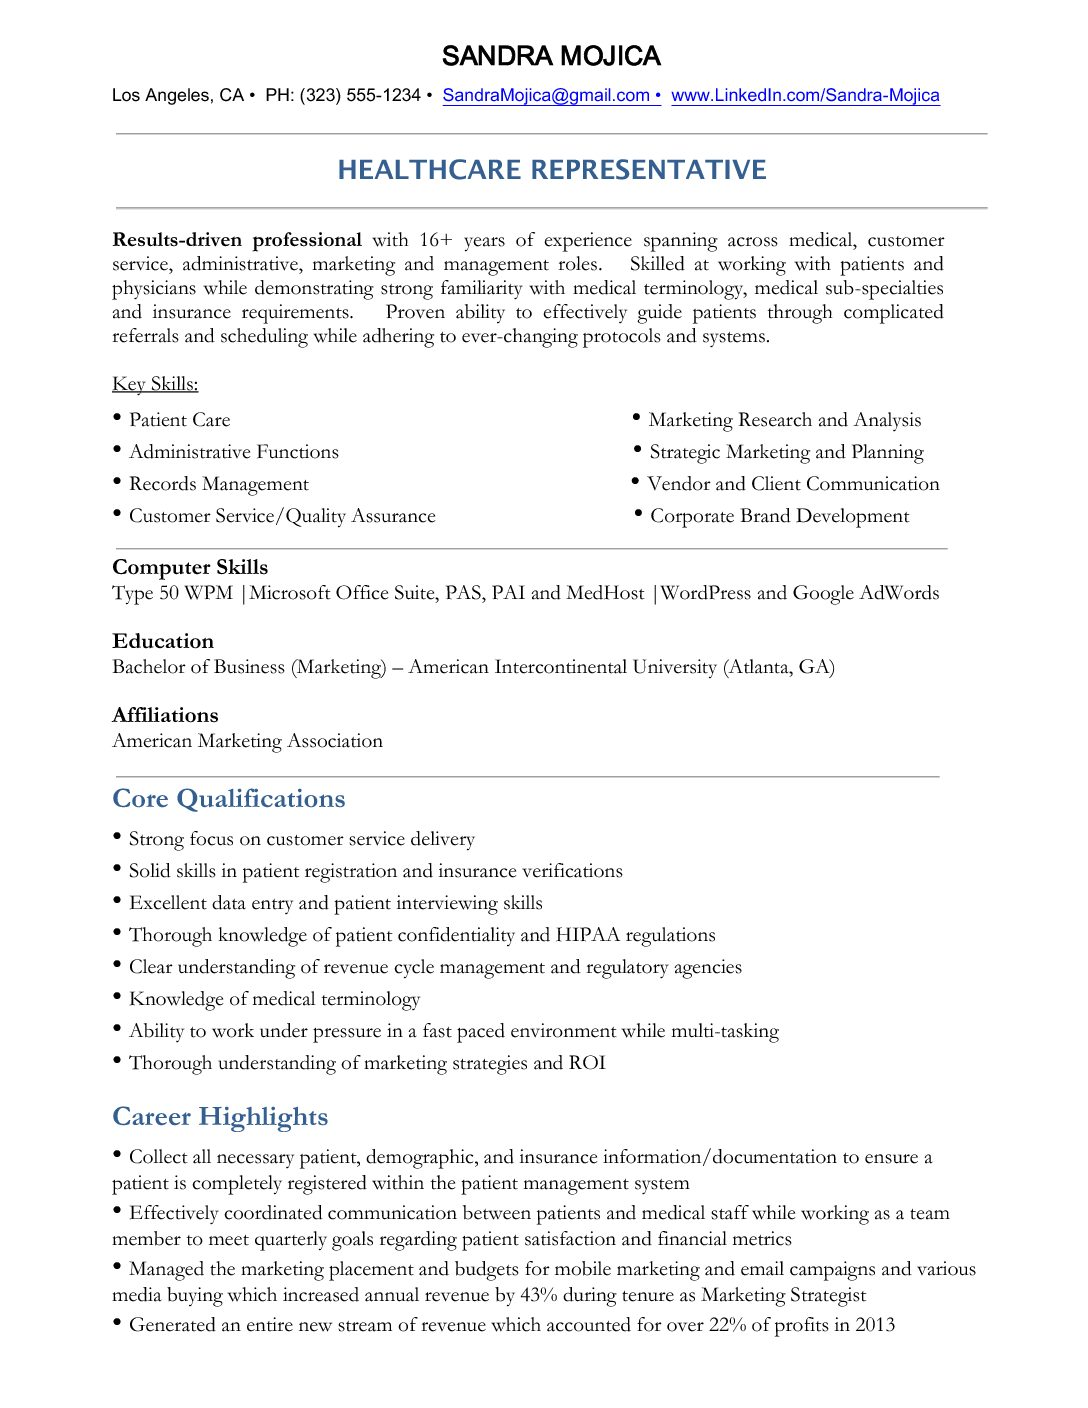 Professional Resume And Cover Letter Writing Services Gallery